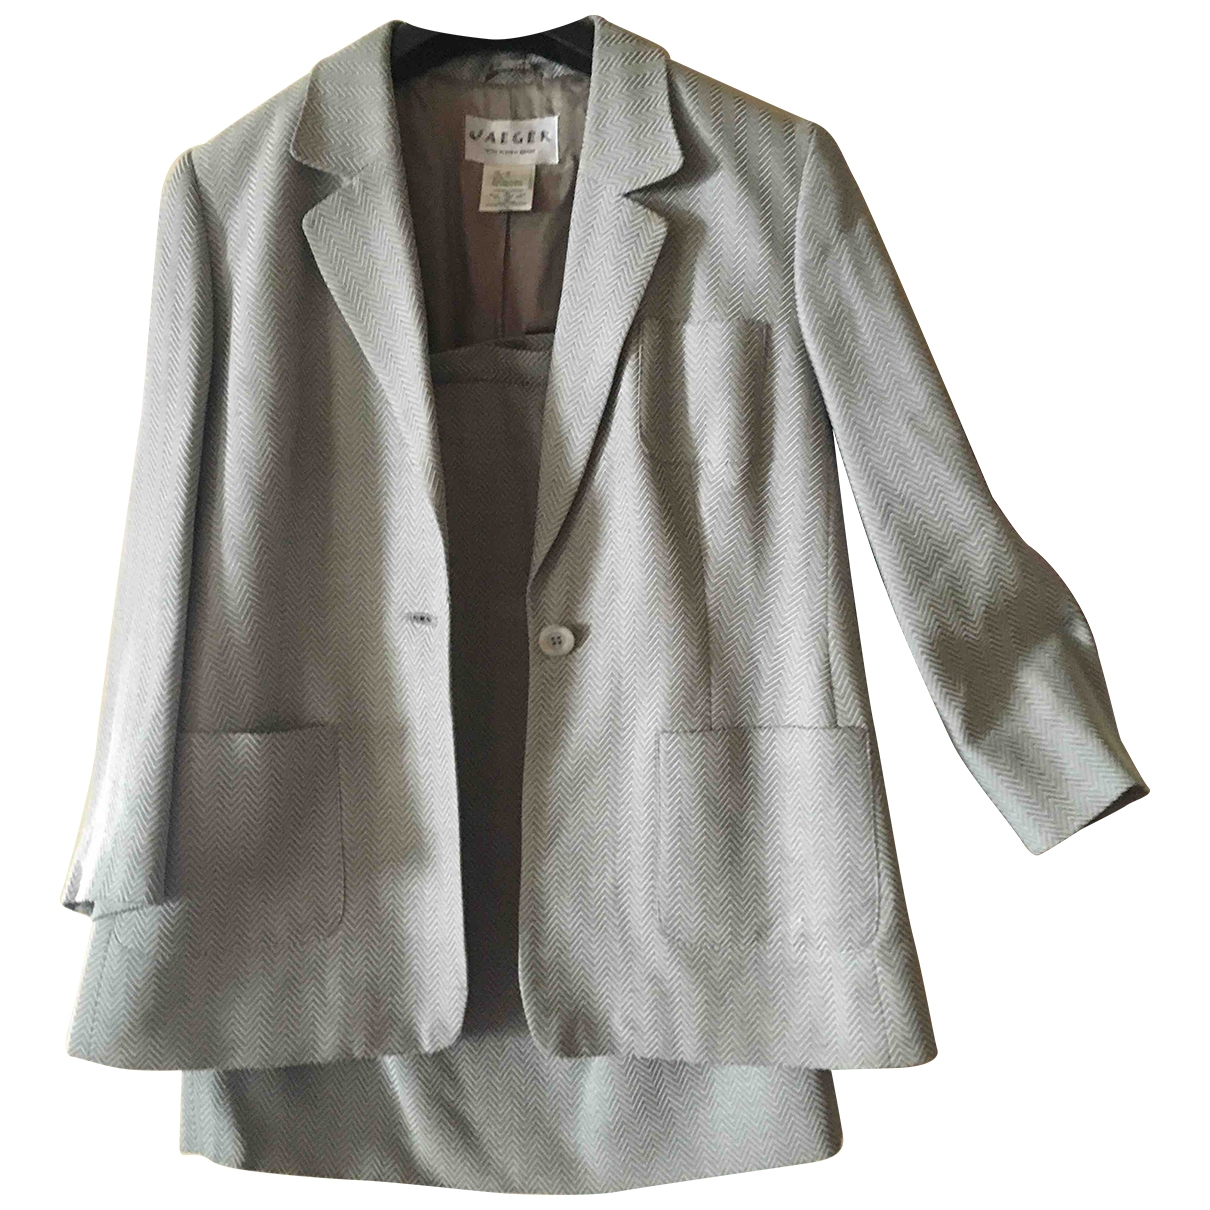 Jaeger-lecoultre \N Grey Cotton jacket for Women 16 UK